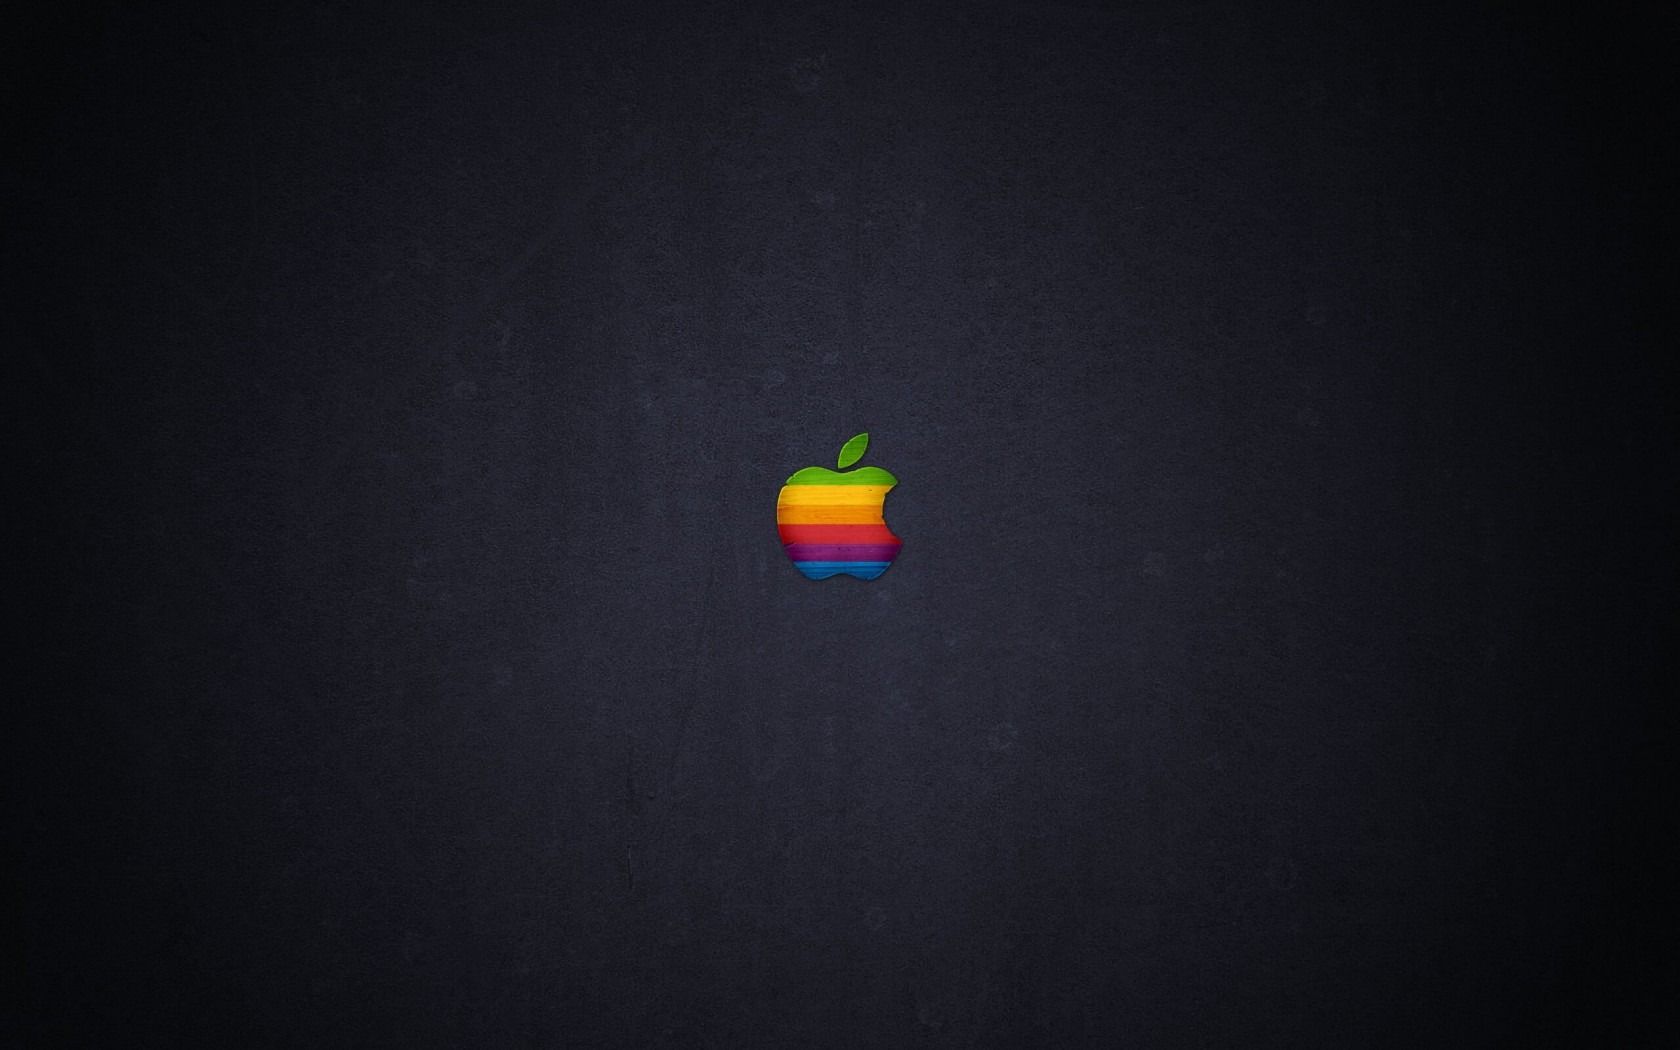 Wood Retro Apple Wallpaper for Desktop 1680x1050